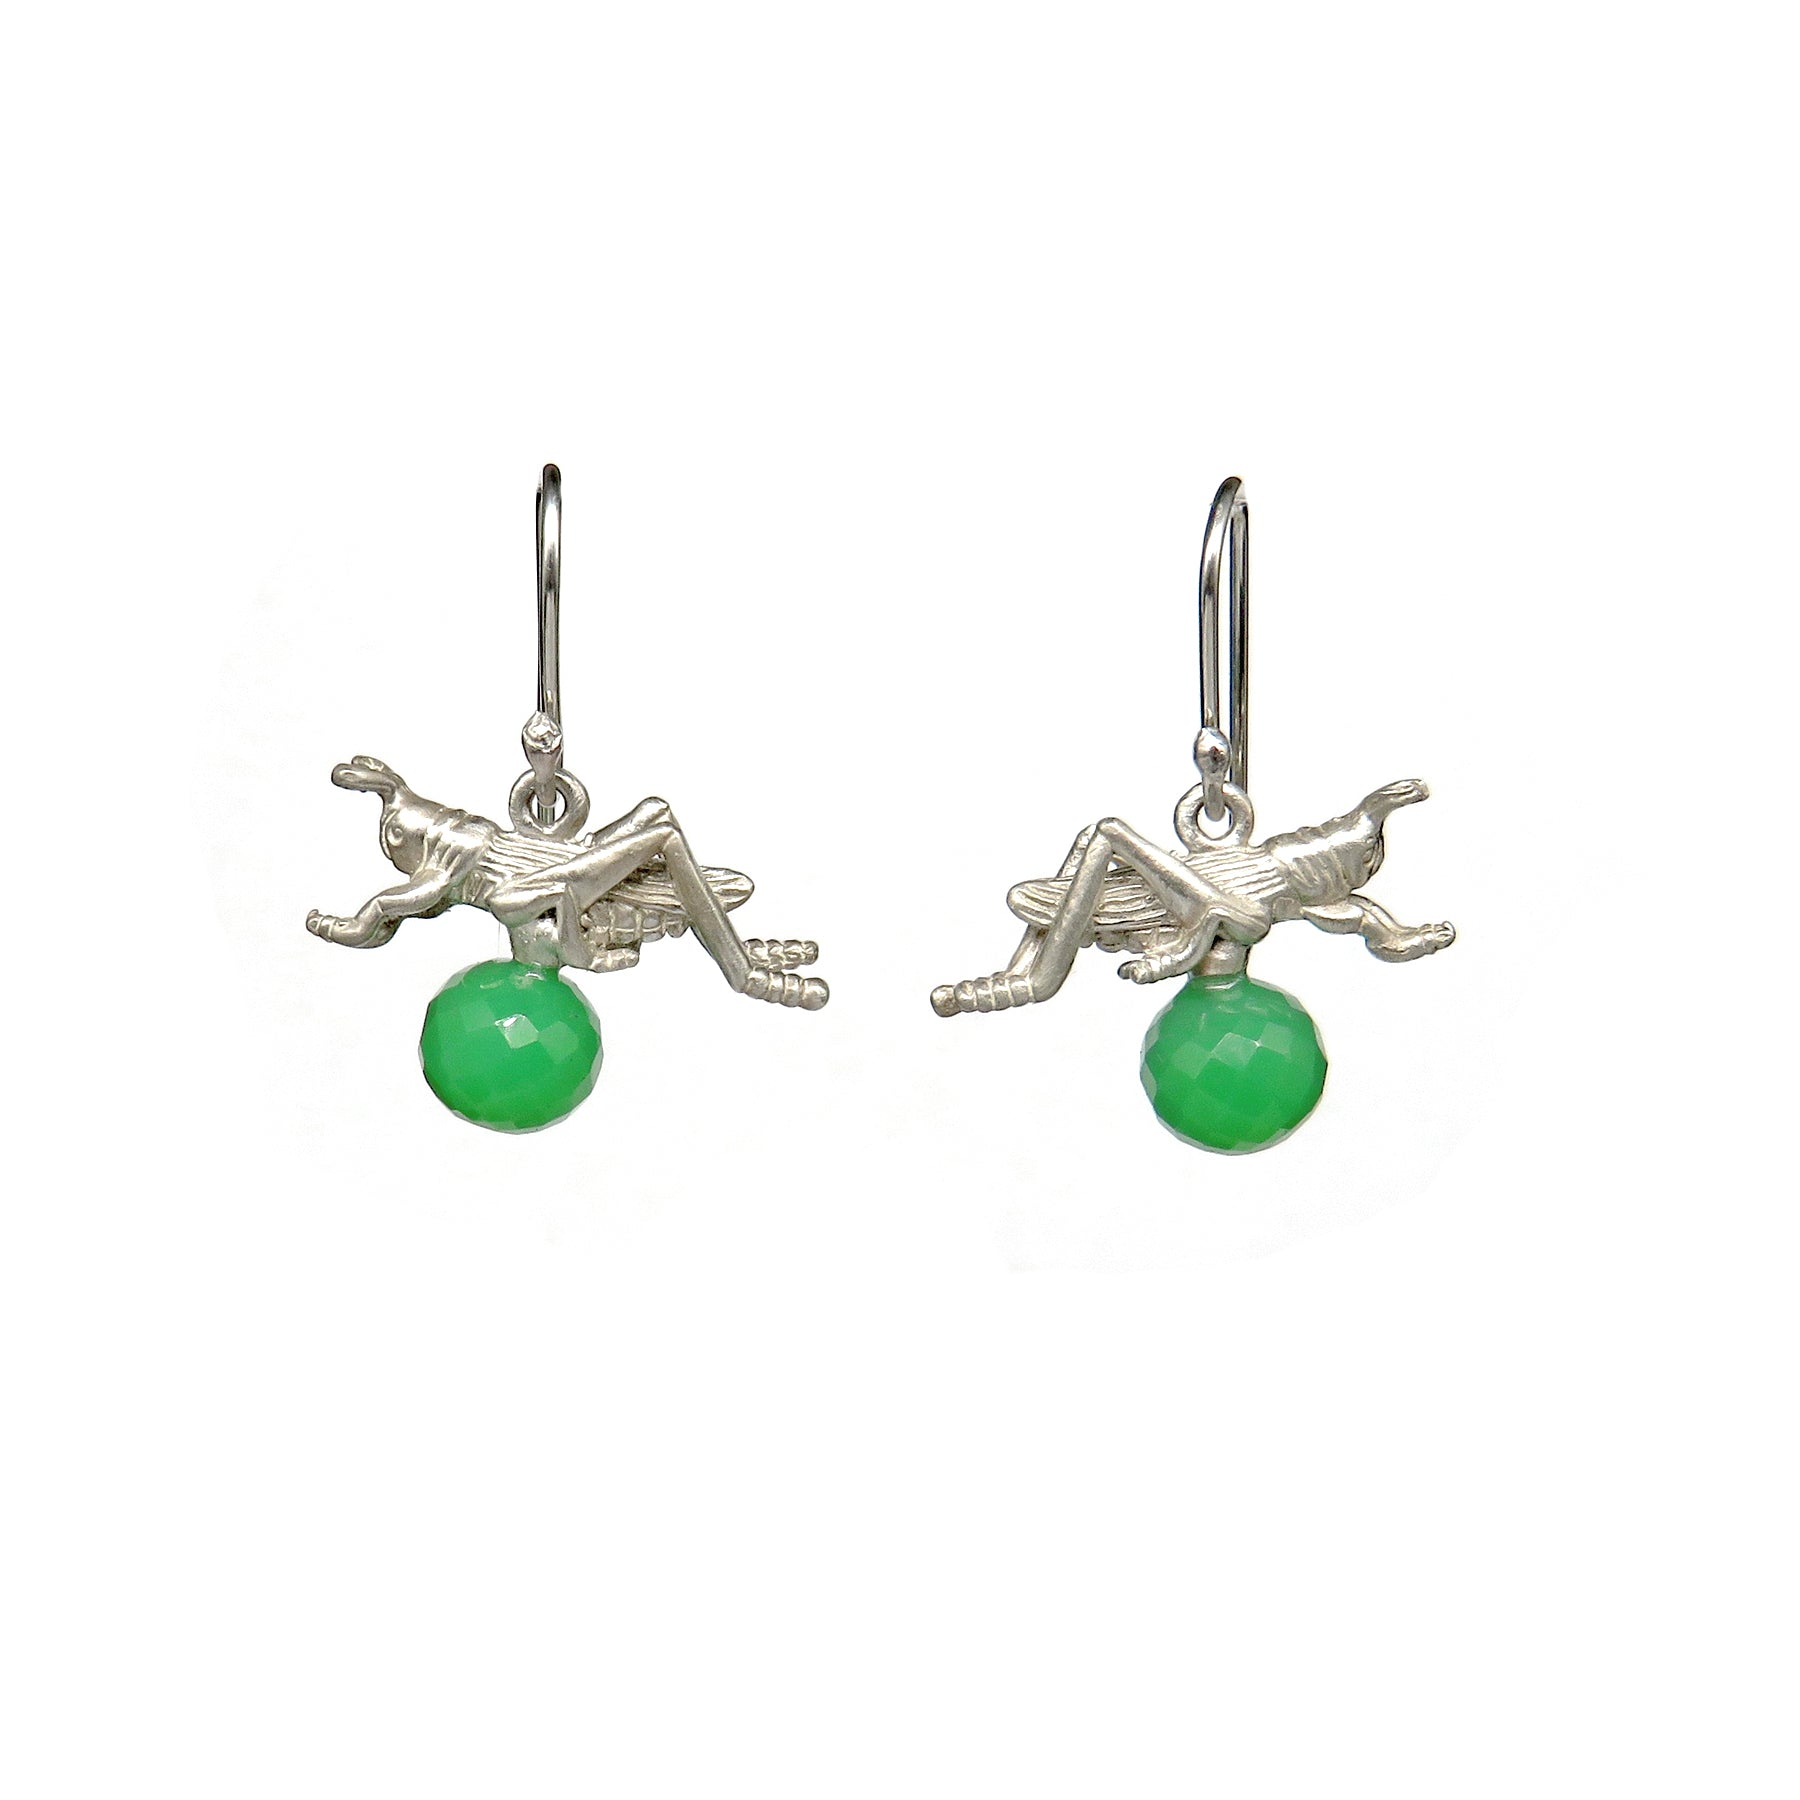 Grasshoppers on hooks with green balls